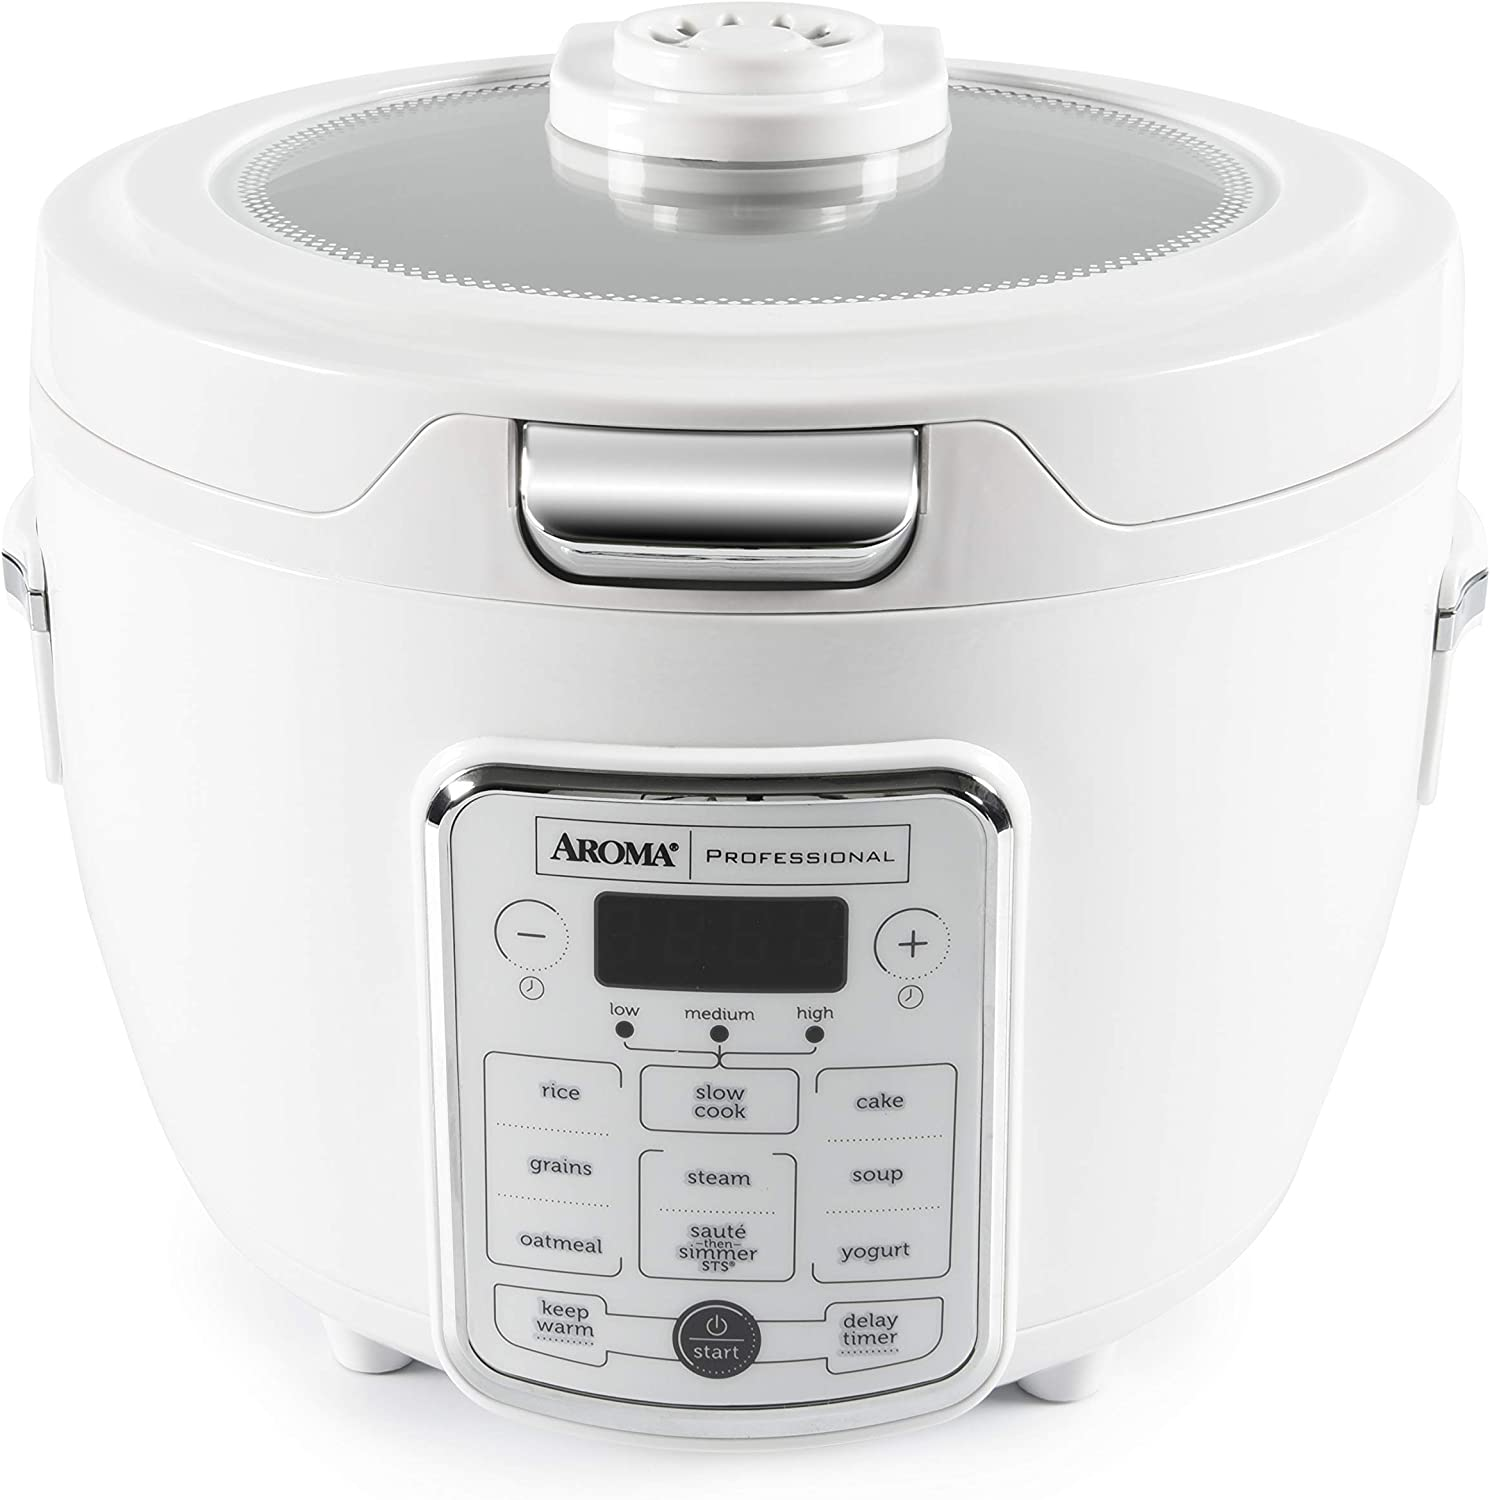 Aroma Housewares Professional 20-Cup(cooked) / 4Qt. Digital Rice Cooker/Multicooker, Automatic Keep Warm and Sauté-then-Simmer Function, white (ARC-1230W)